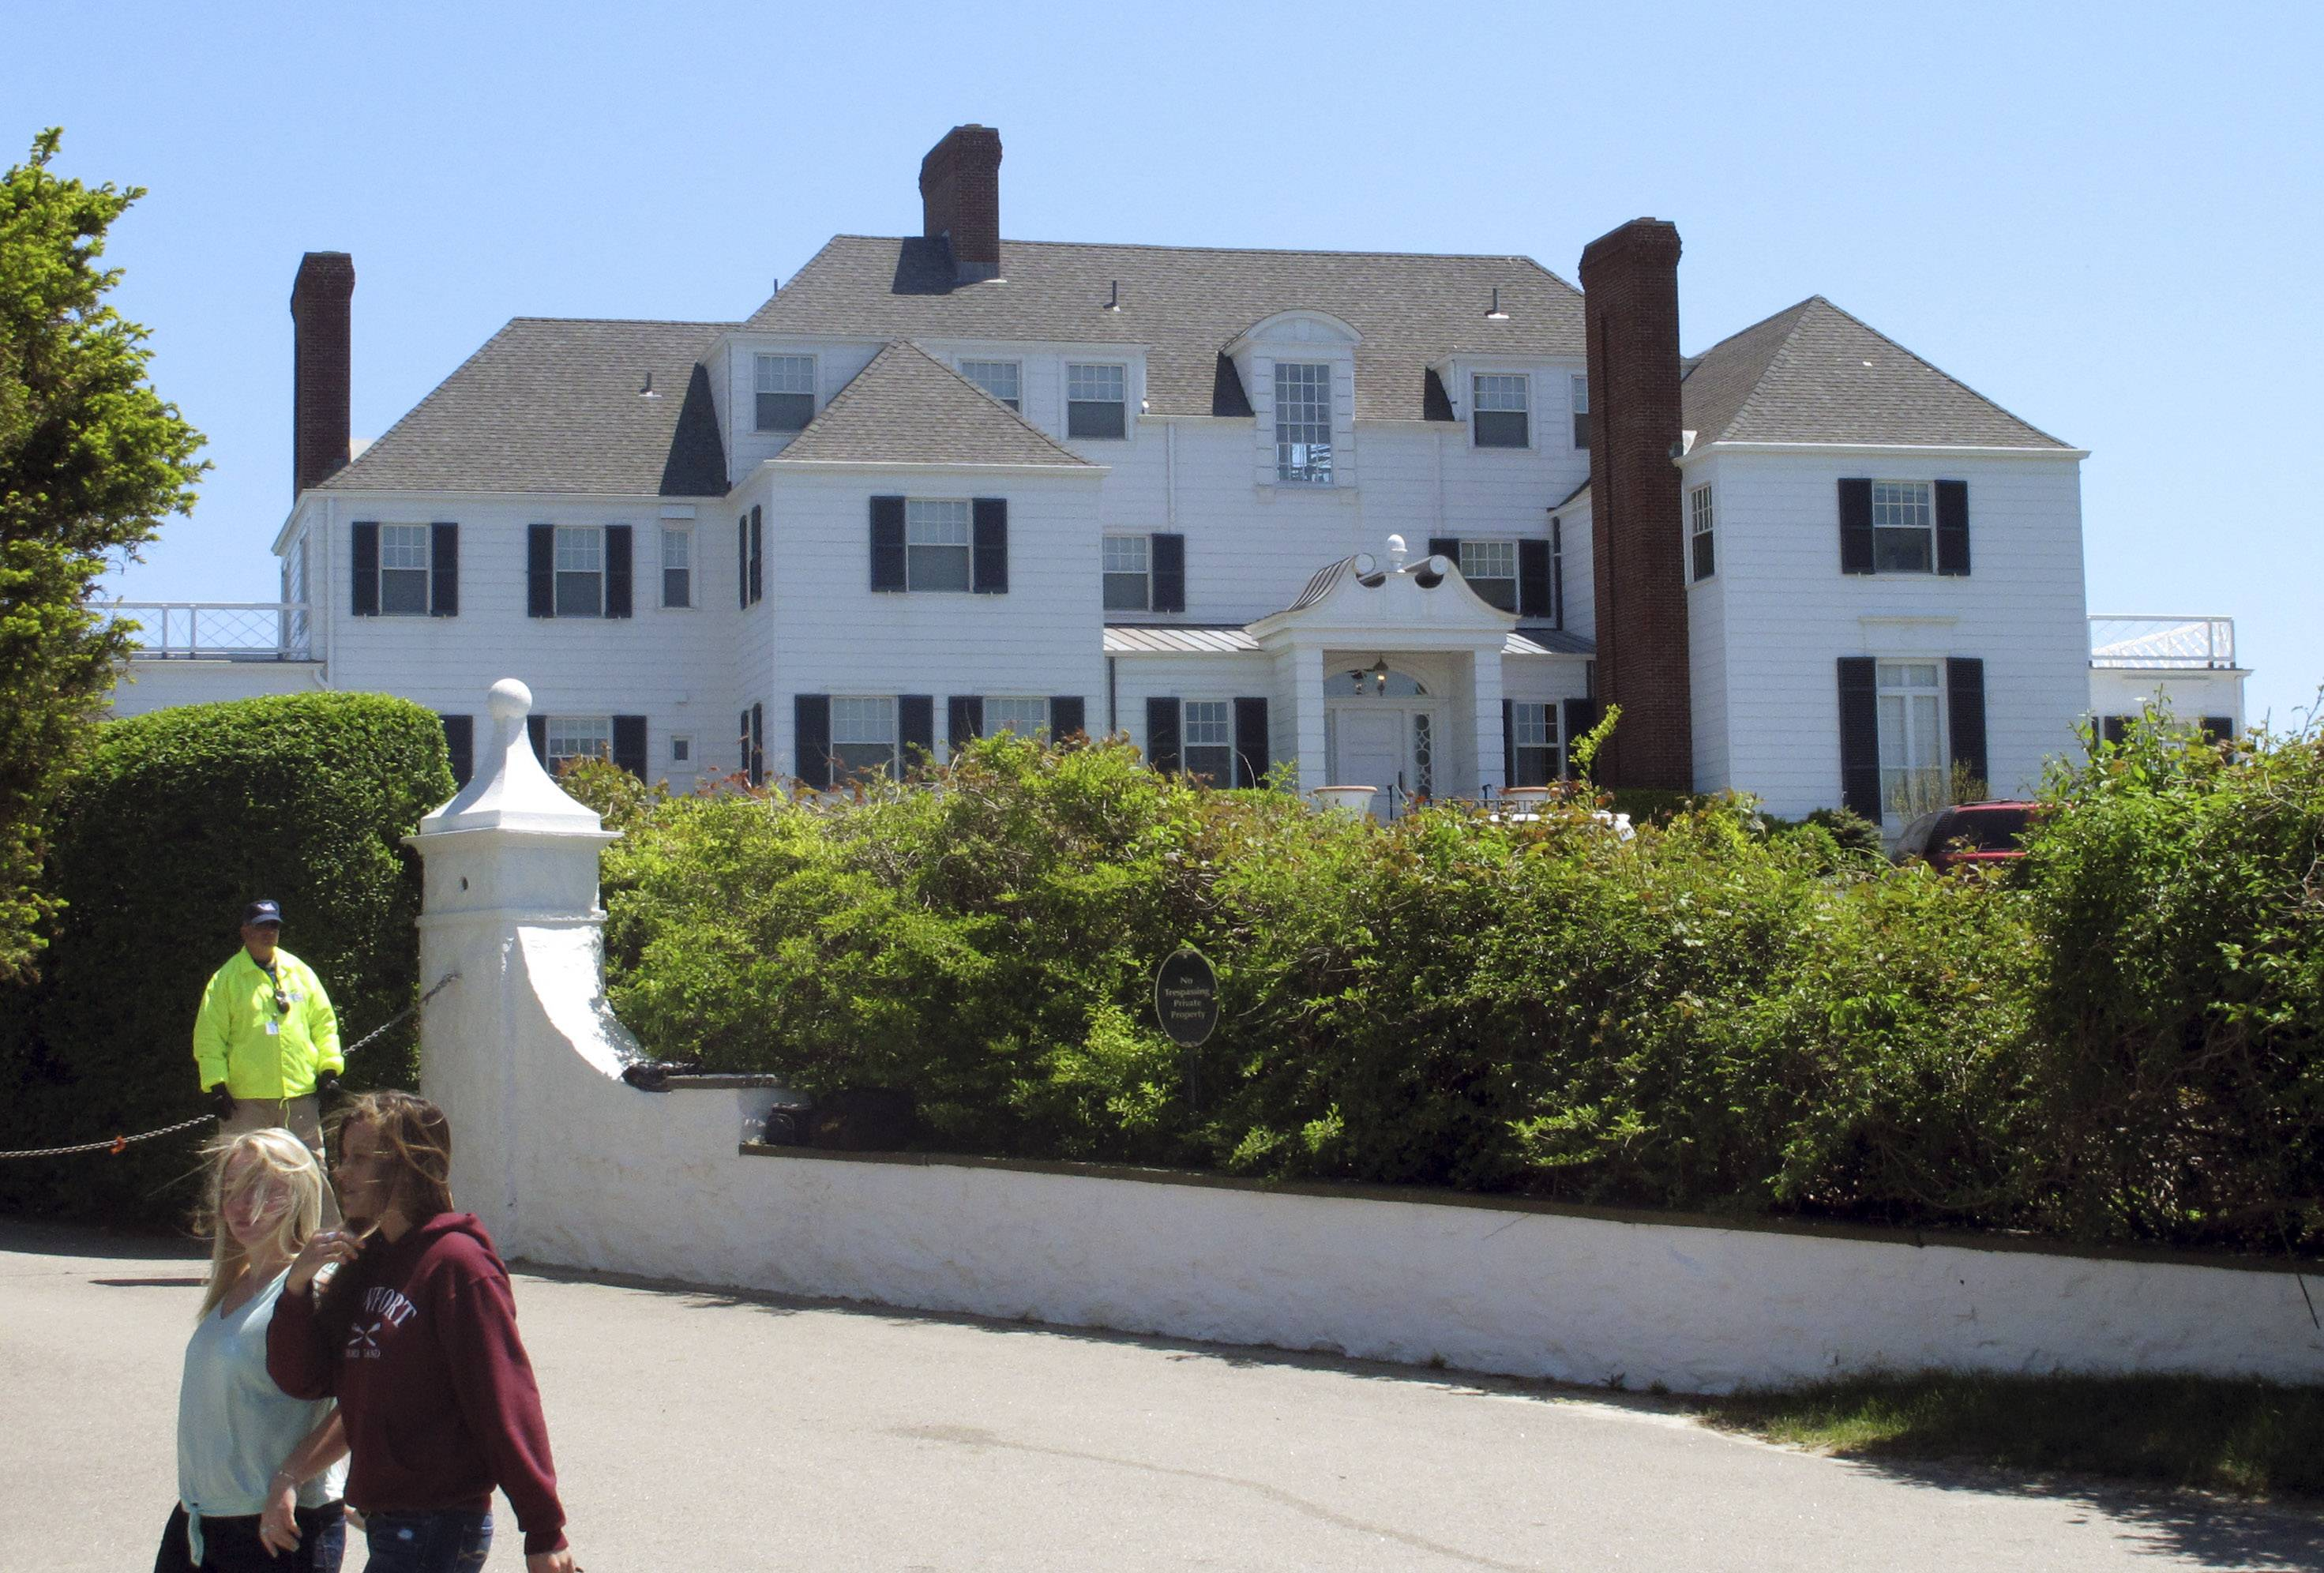 People walk past a house owned by Taylor Swift in the village of Watch Hill in Westerly, R.I. Daniel Cole, 39, of Brewster, Mass., was sentenced to probation Thursday, July 18, 2014, after being found guilty of trespassing at the seaside mansion.